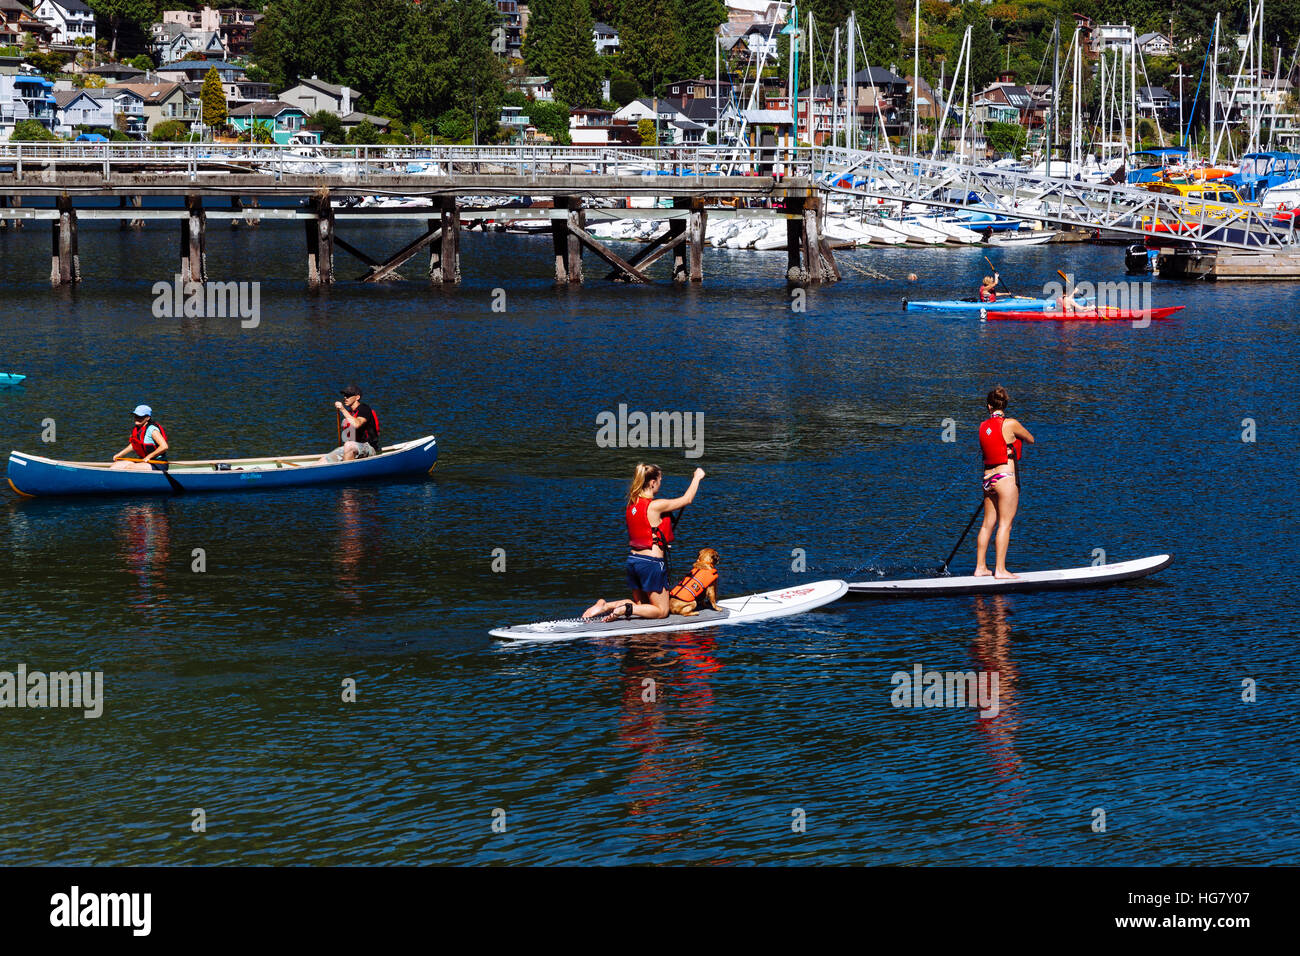 Water Activities On The Waters By Deep Cove Village Vancouver British Columbia Canada